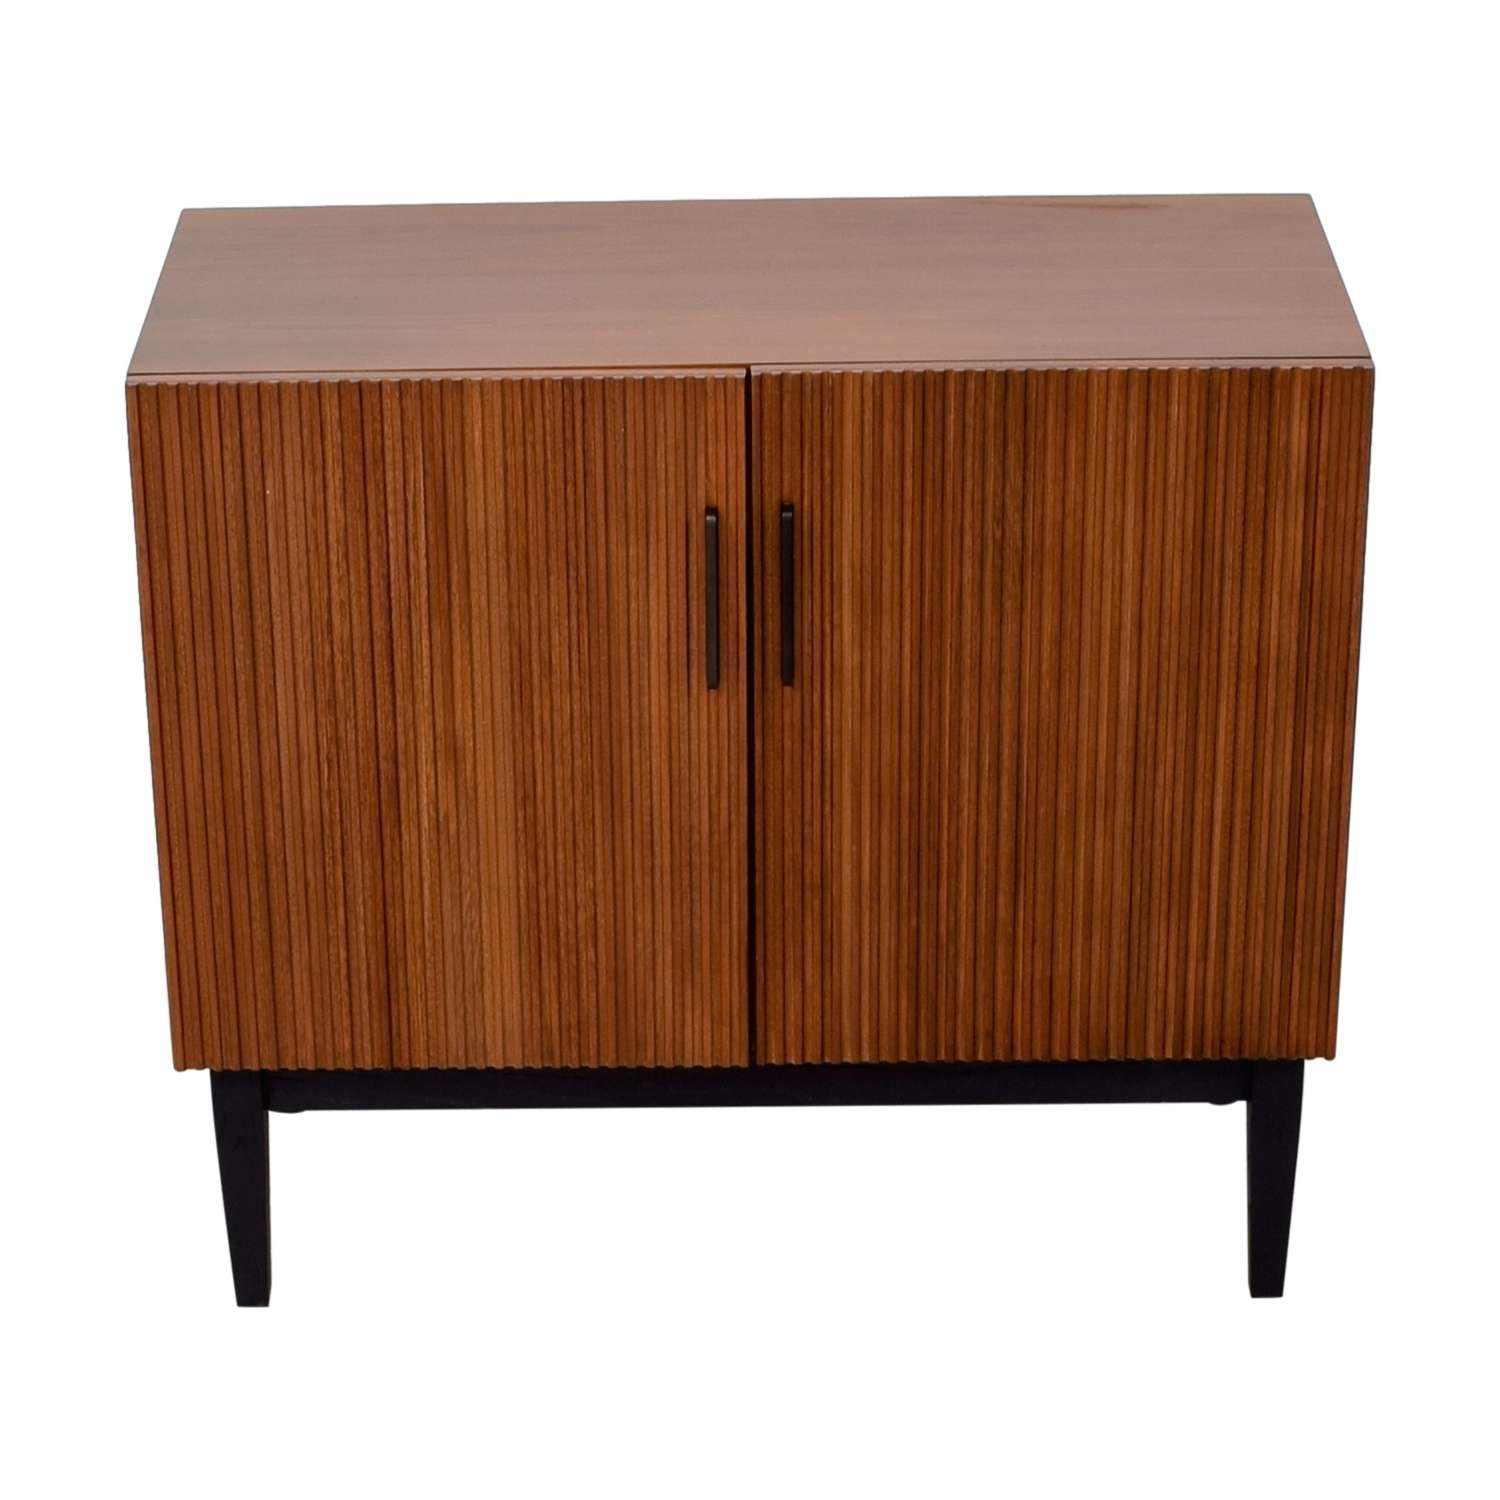 45% Off – West Elm West Elm Wood Bar Cabinet / Storage Throughout Sideboards Bar Cabinet (View 19 of 20)